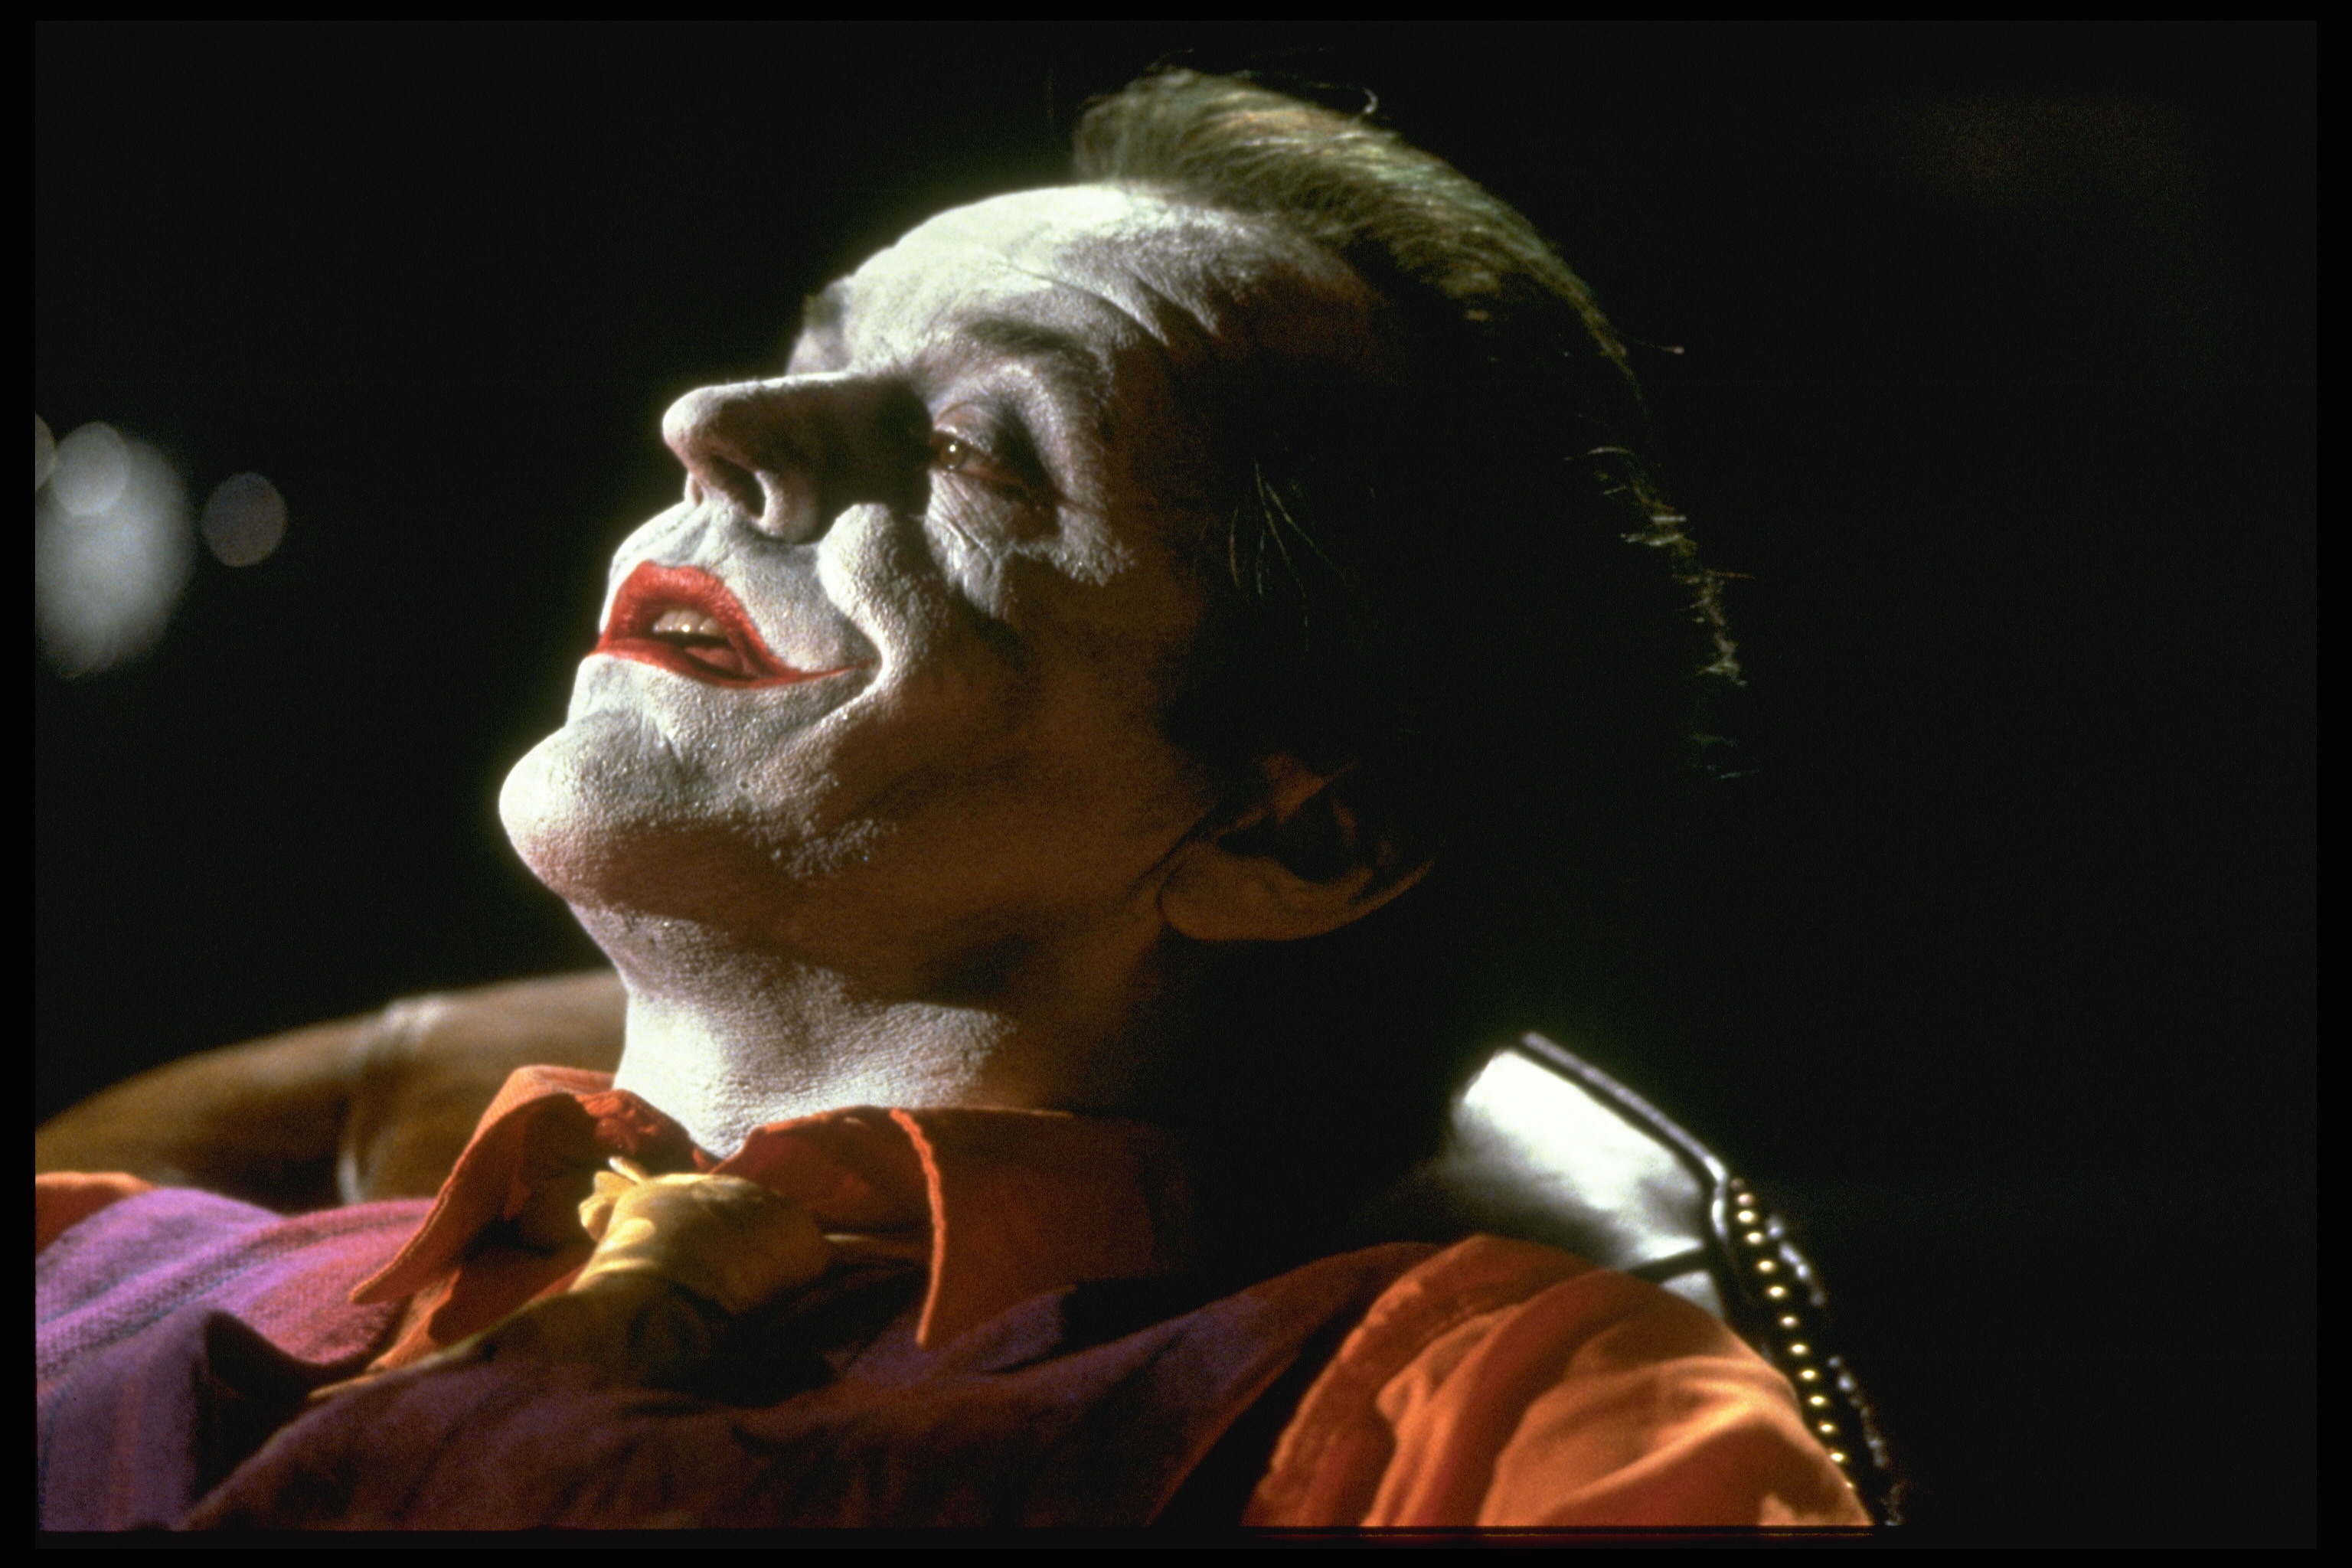 Jack Nicholson plays the Joker in the movie Batman, directed by Tim Burton